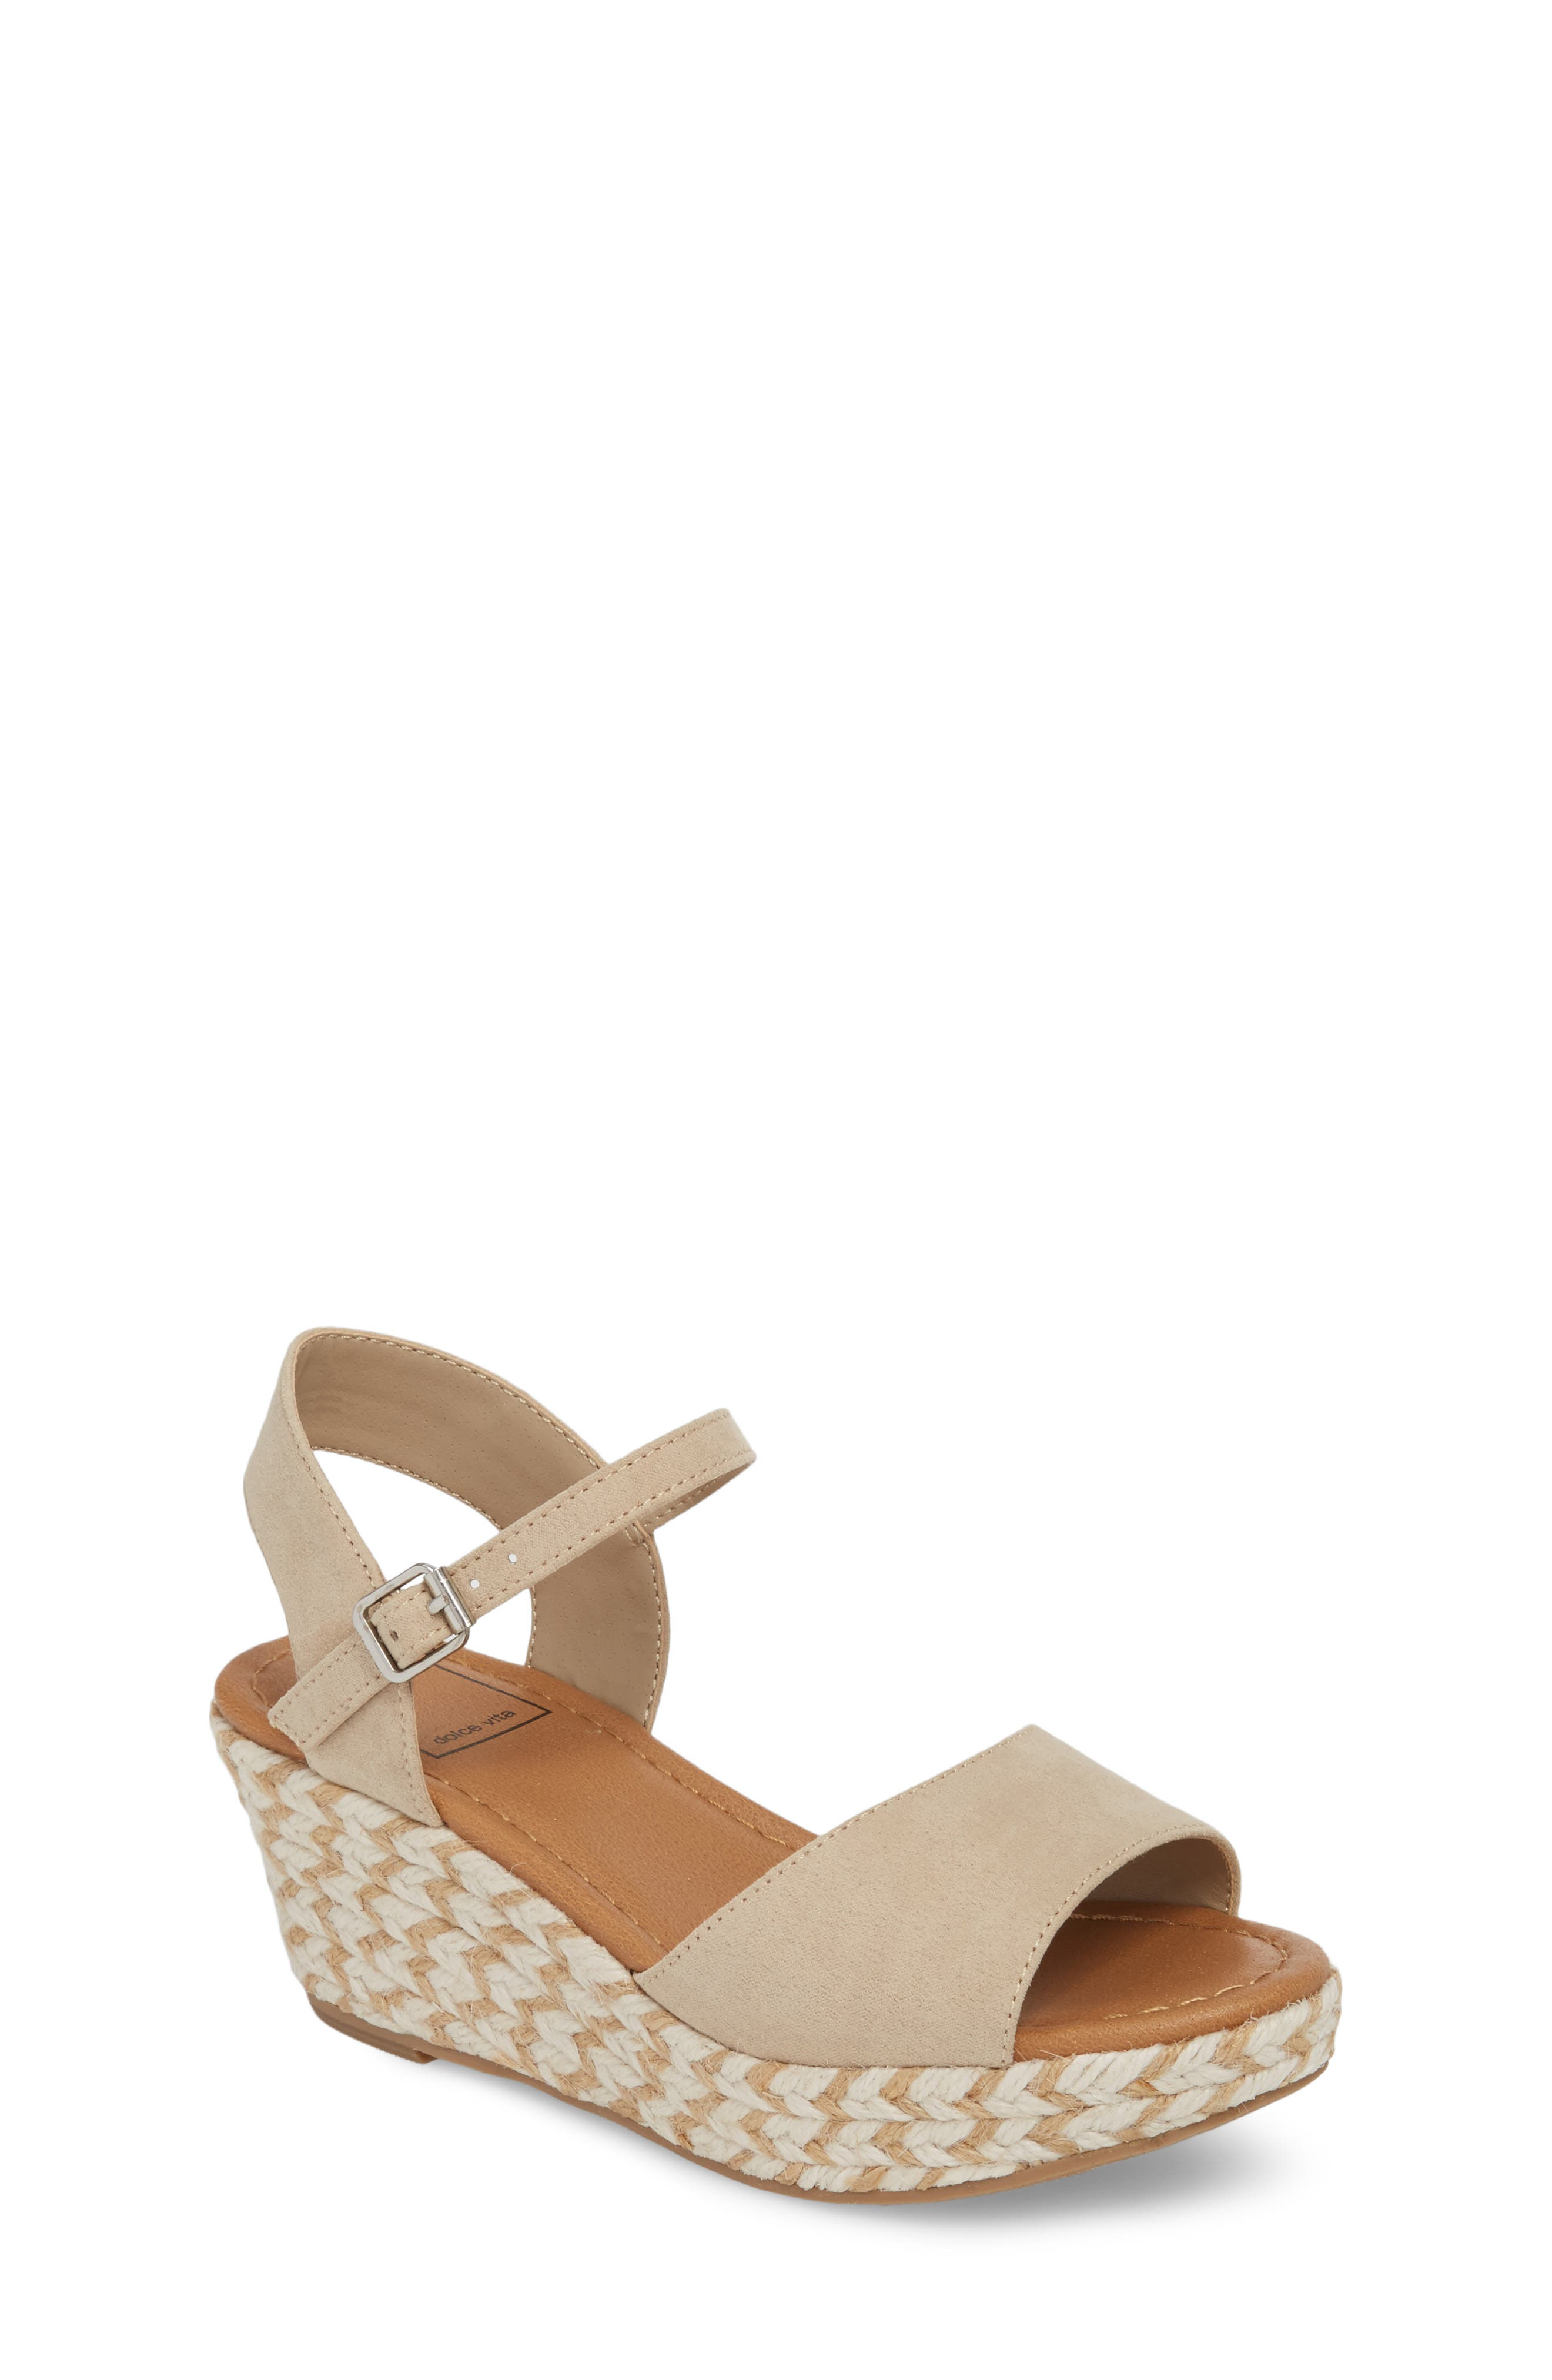 Wendy Espadrille Wedge Sandal,                         Main,                         color, 277